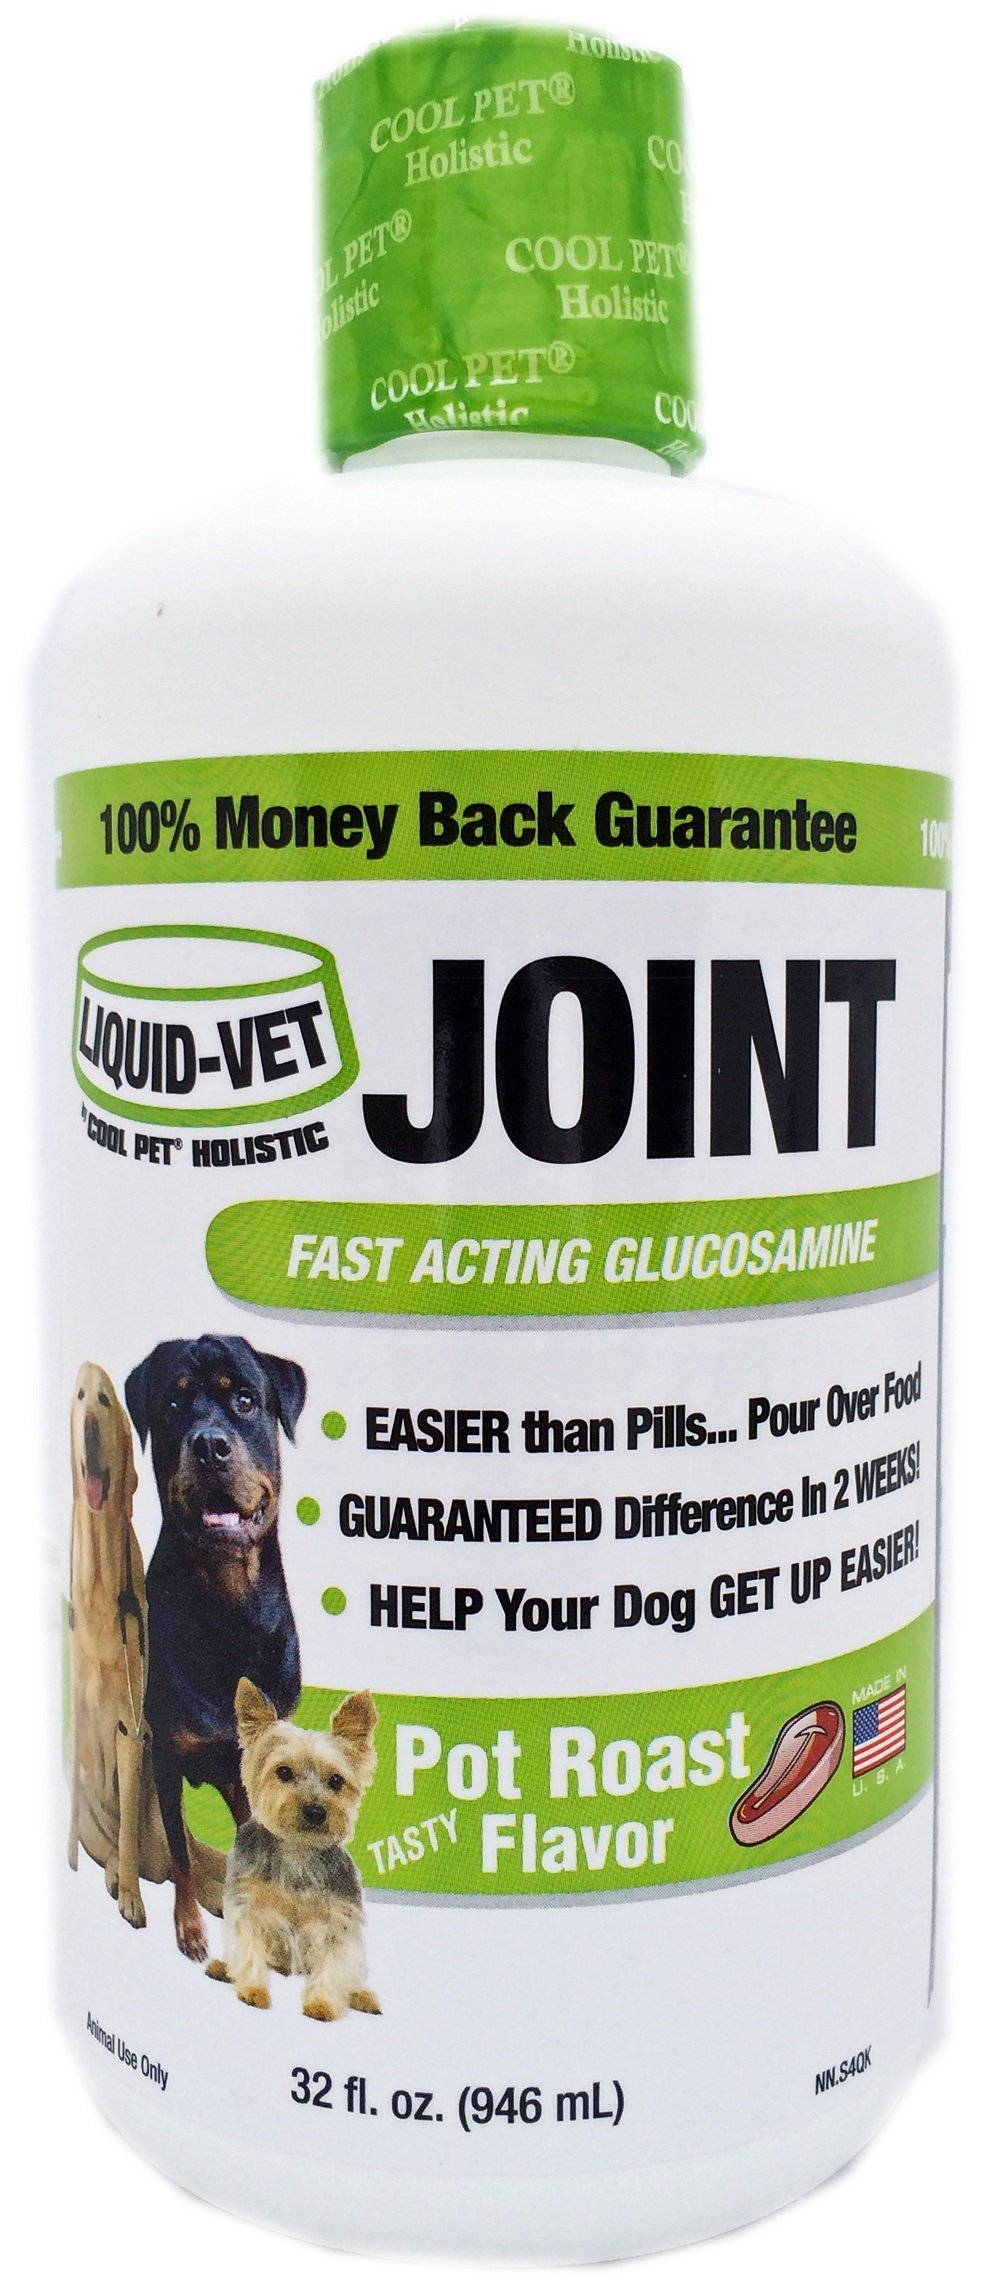 Liquid-Vet Joint Formula – Fast Acting Glucosamine for Joint Aid in Canines – Pot Roast Flavor – Economy Size – 32 Fluid Ounces